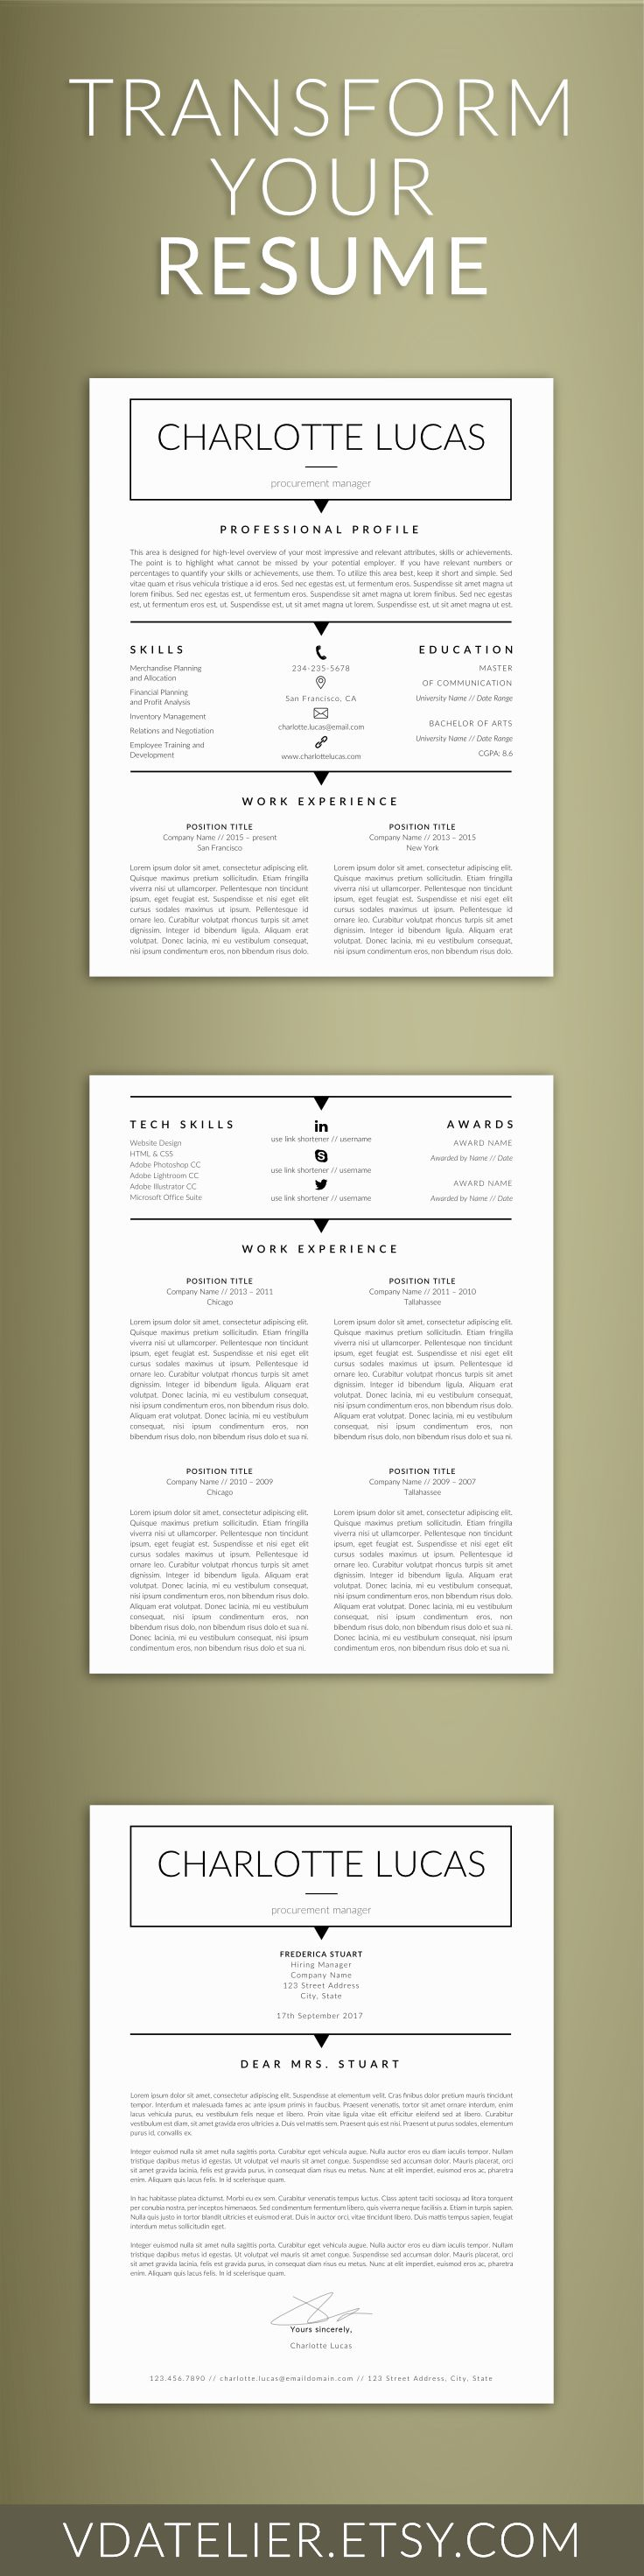 Minimalist Resume for MS Word | CV Clean, Printable Resume | CV Template, Modern Man Resume | 1, 2, 3 Page Resume | Cover Letter & References